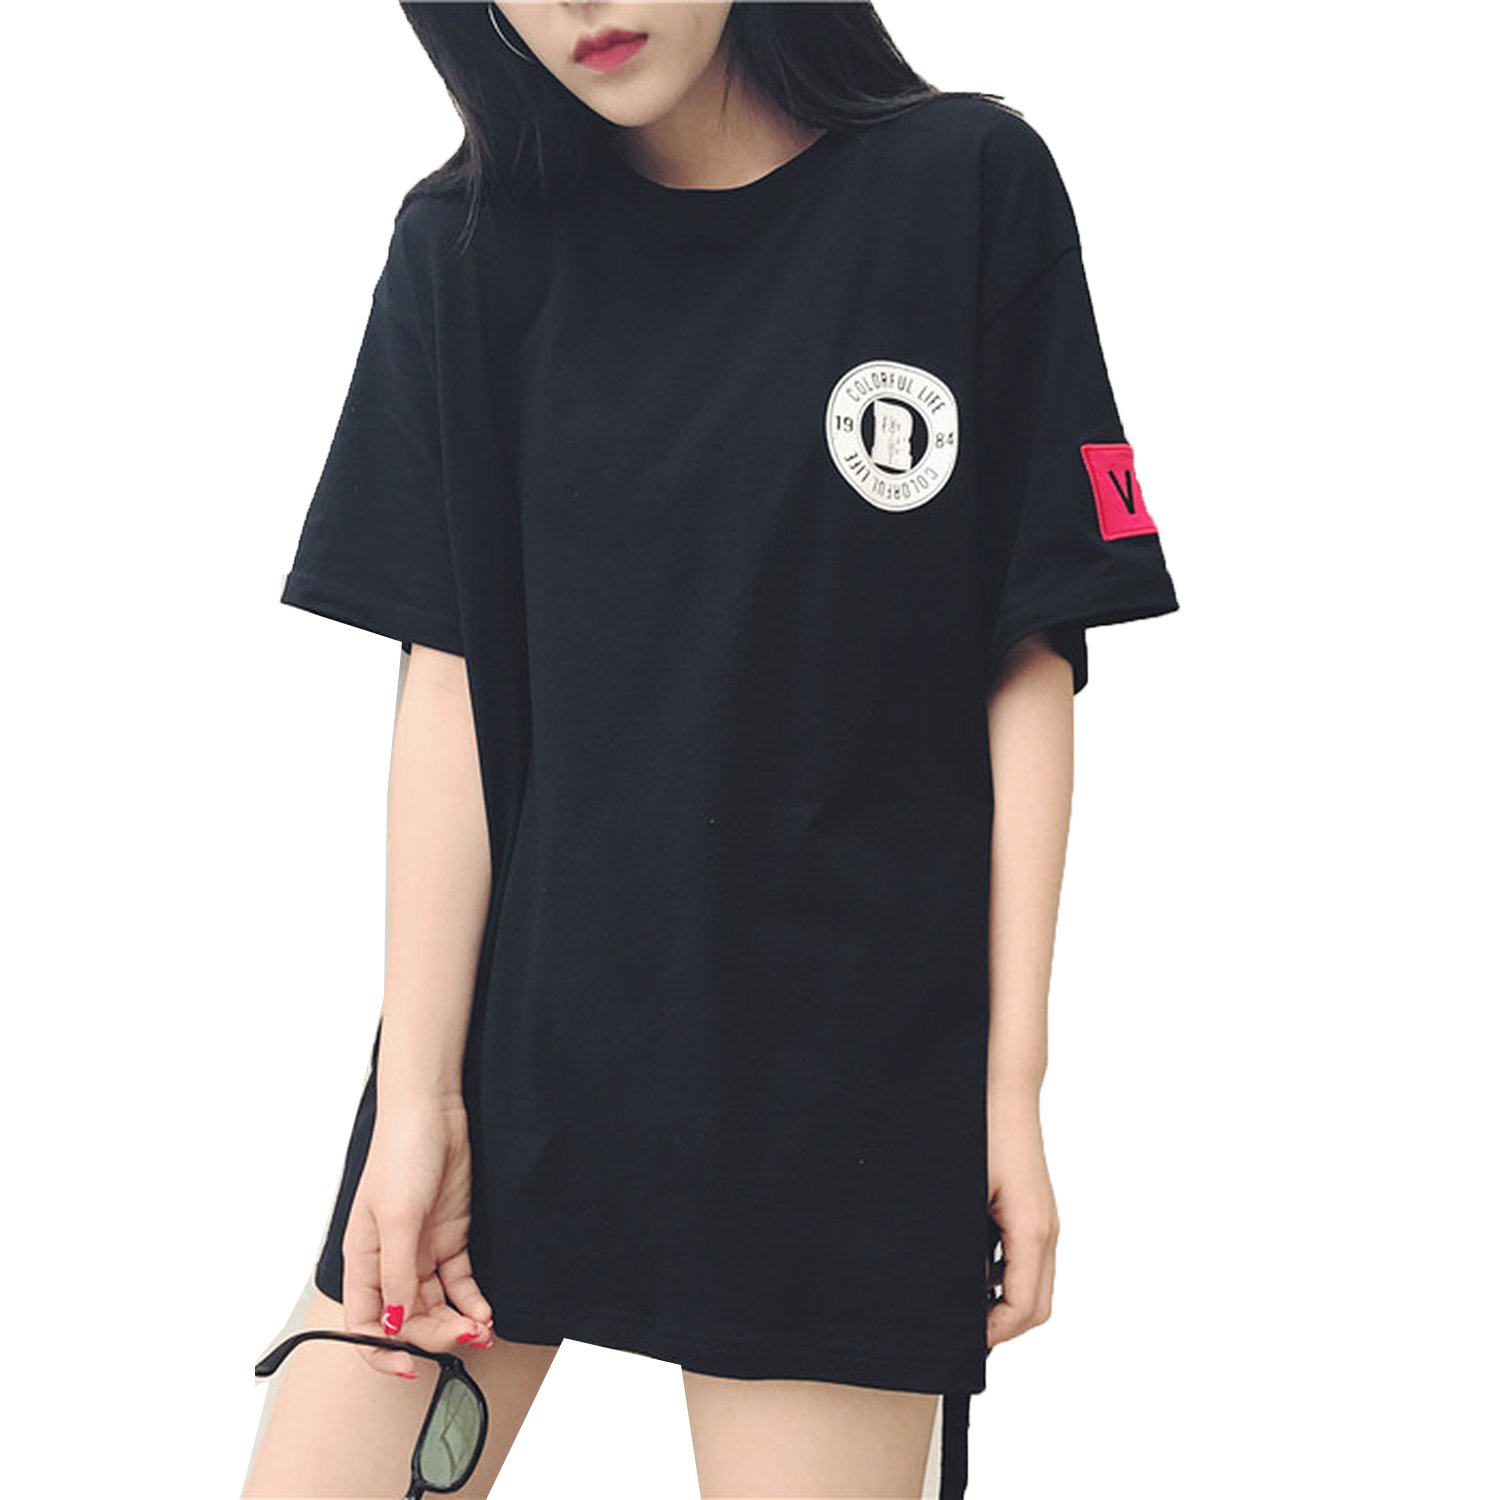 f2dcd950f27322 Oversized t Shirt Harajuku Punk Rock Short Sleeve tee Shirts Women Side  Lace up Korean Style Tops Clothes